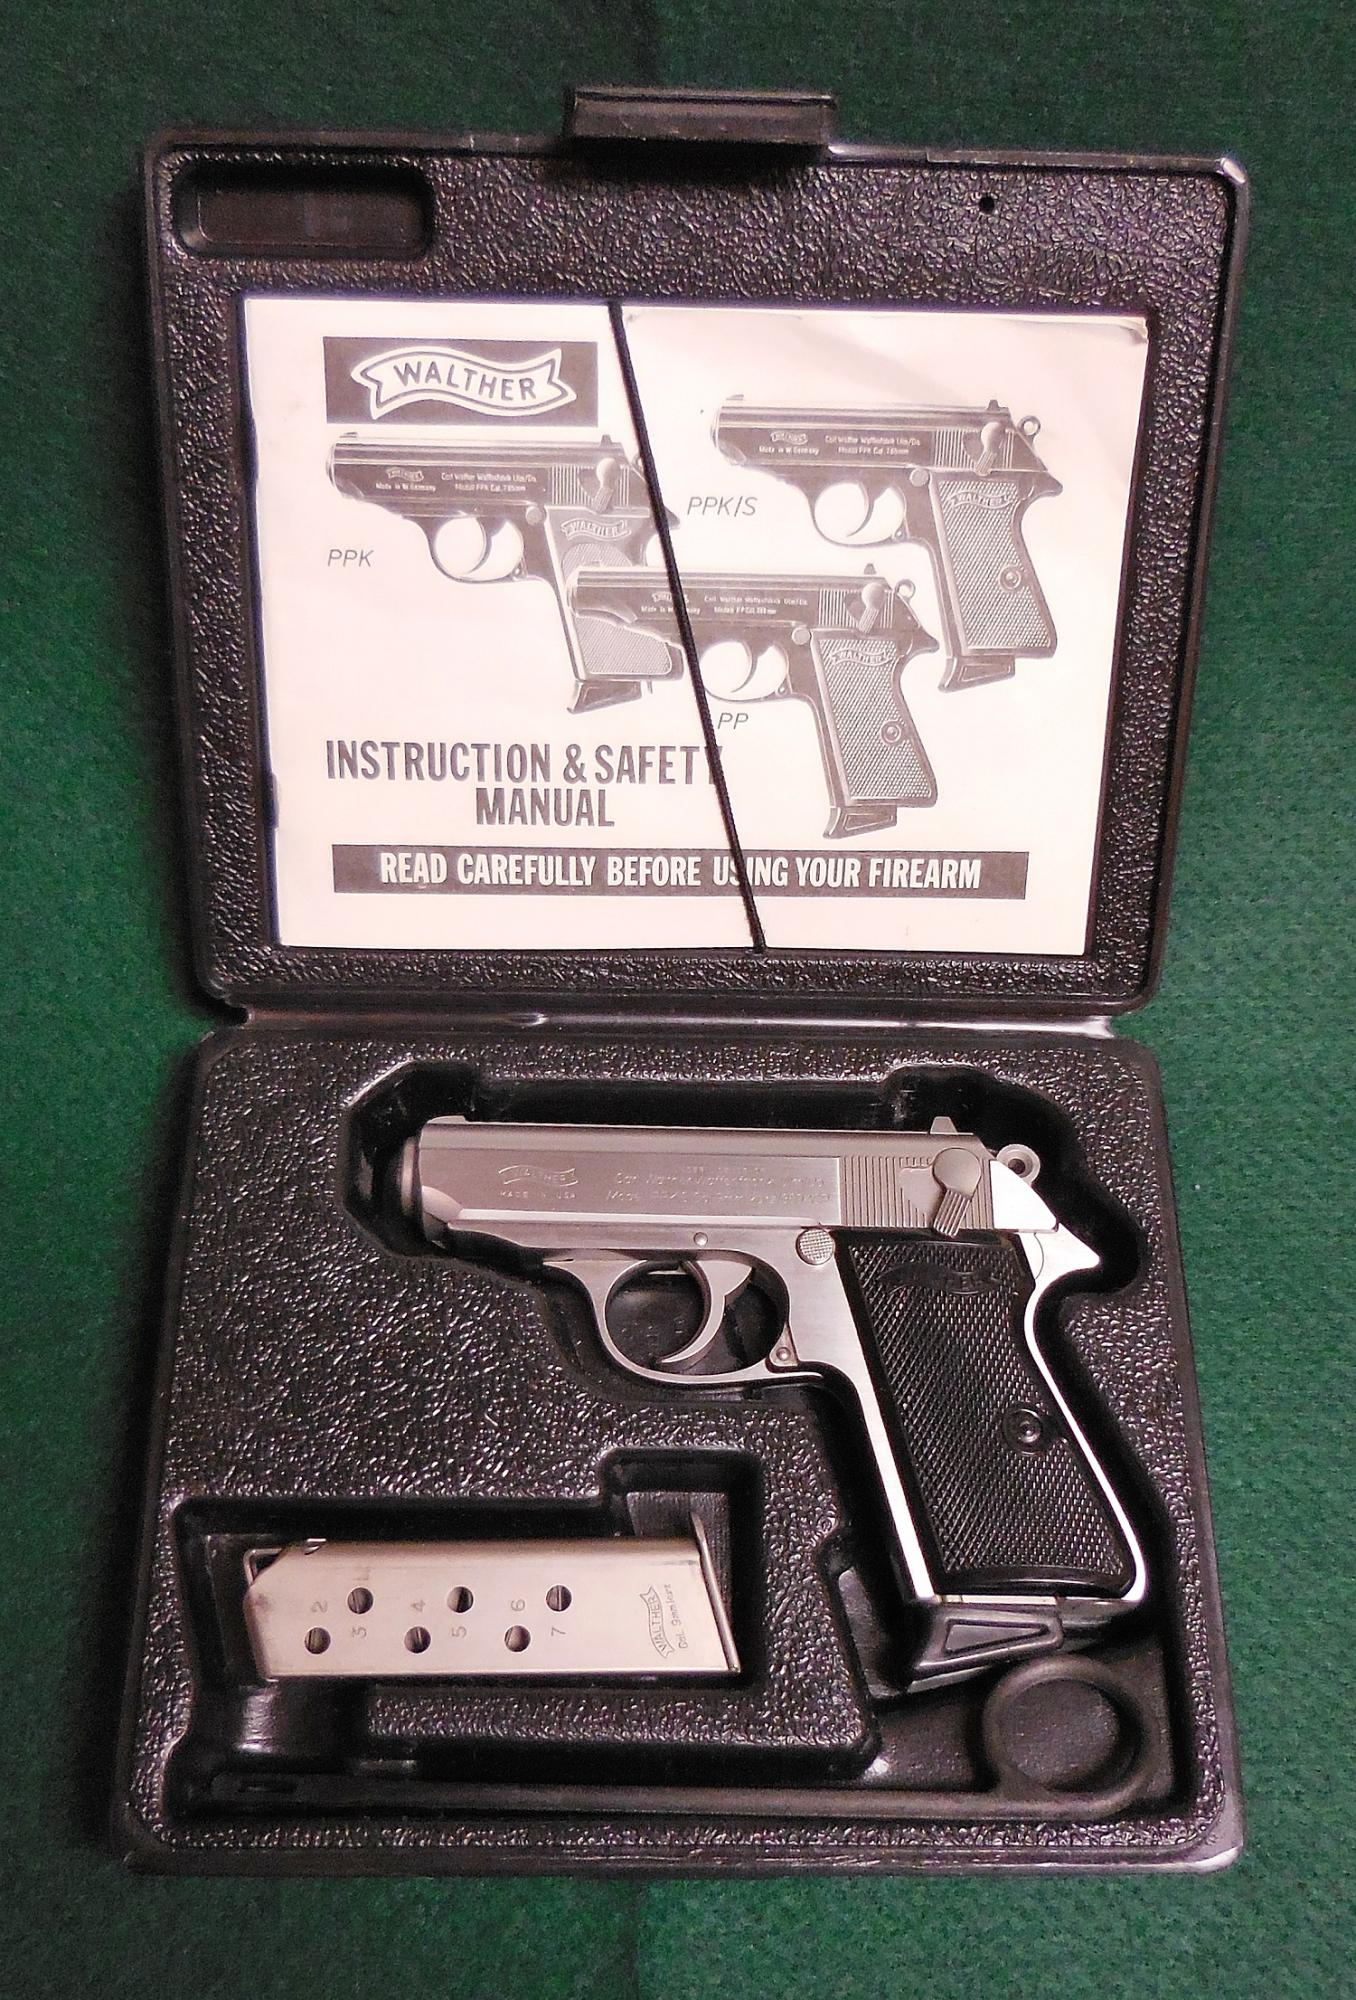 WCH022_Walther_PPKS_in_Box.jpg